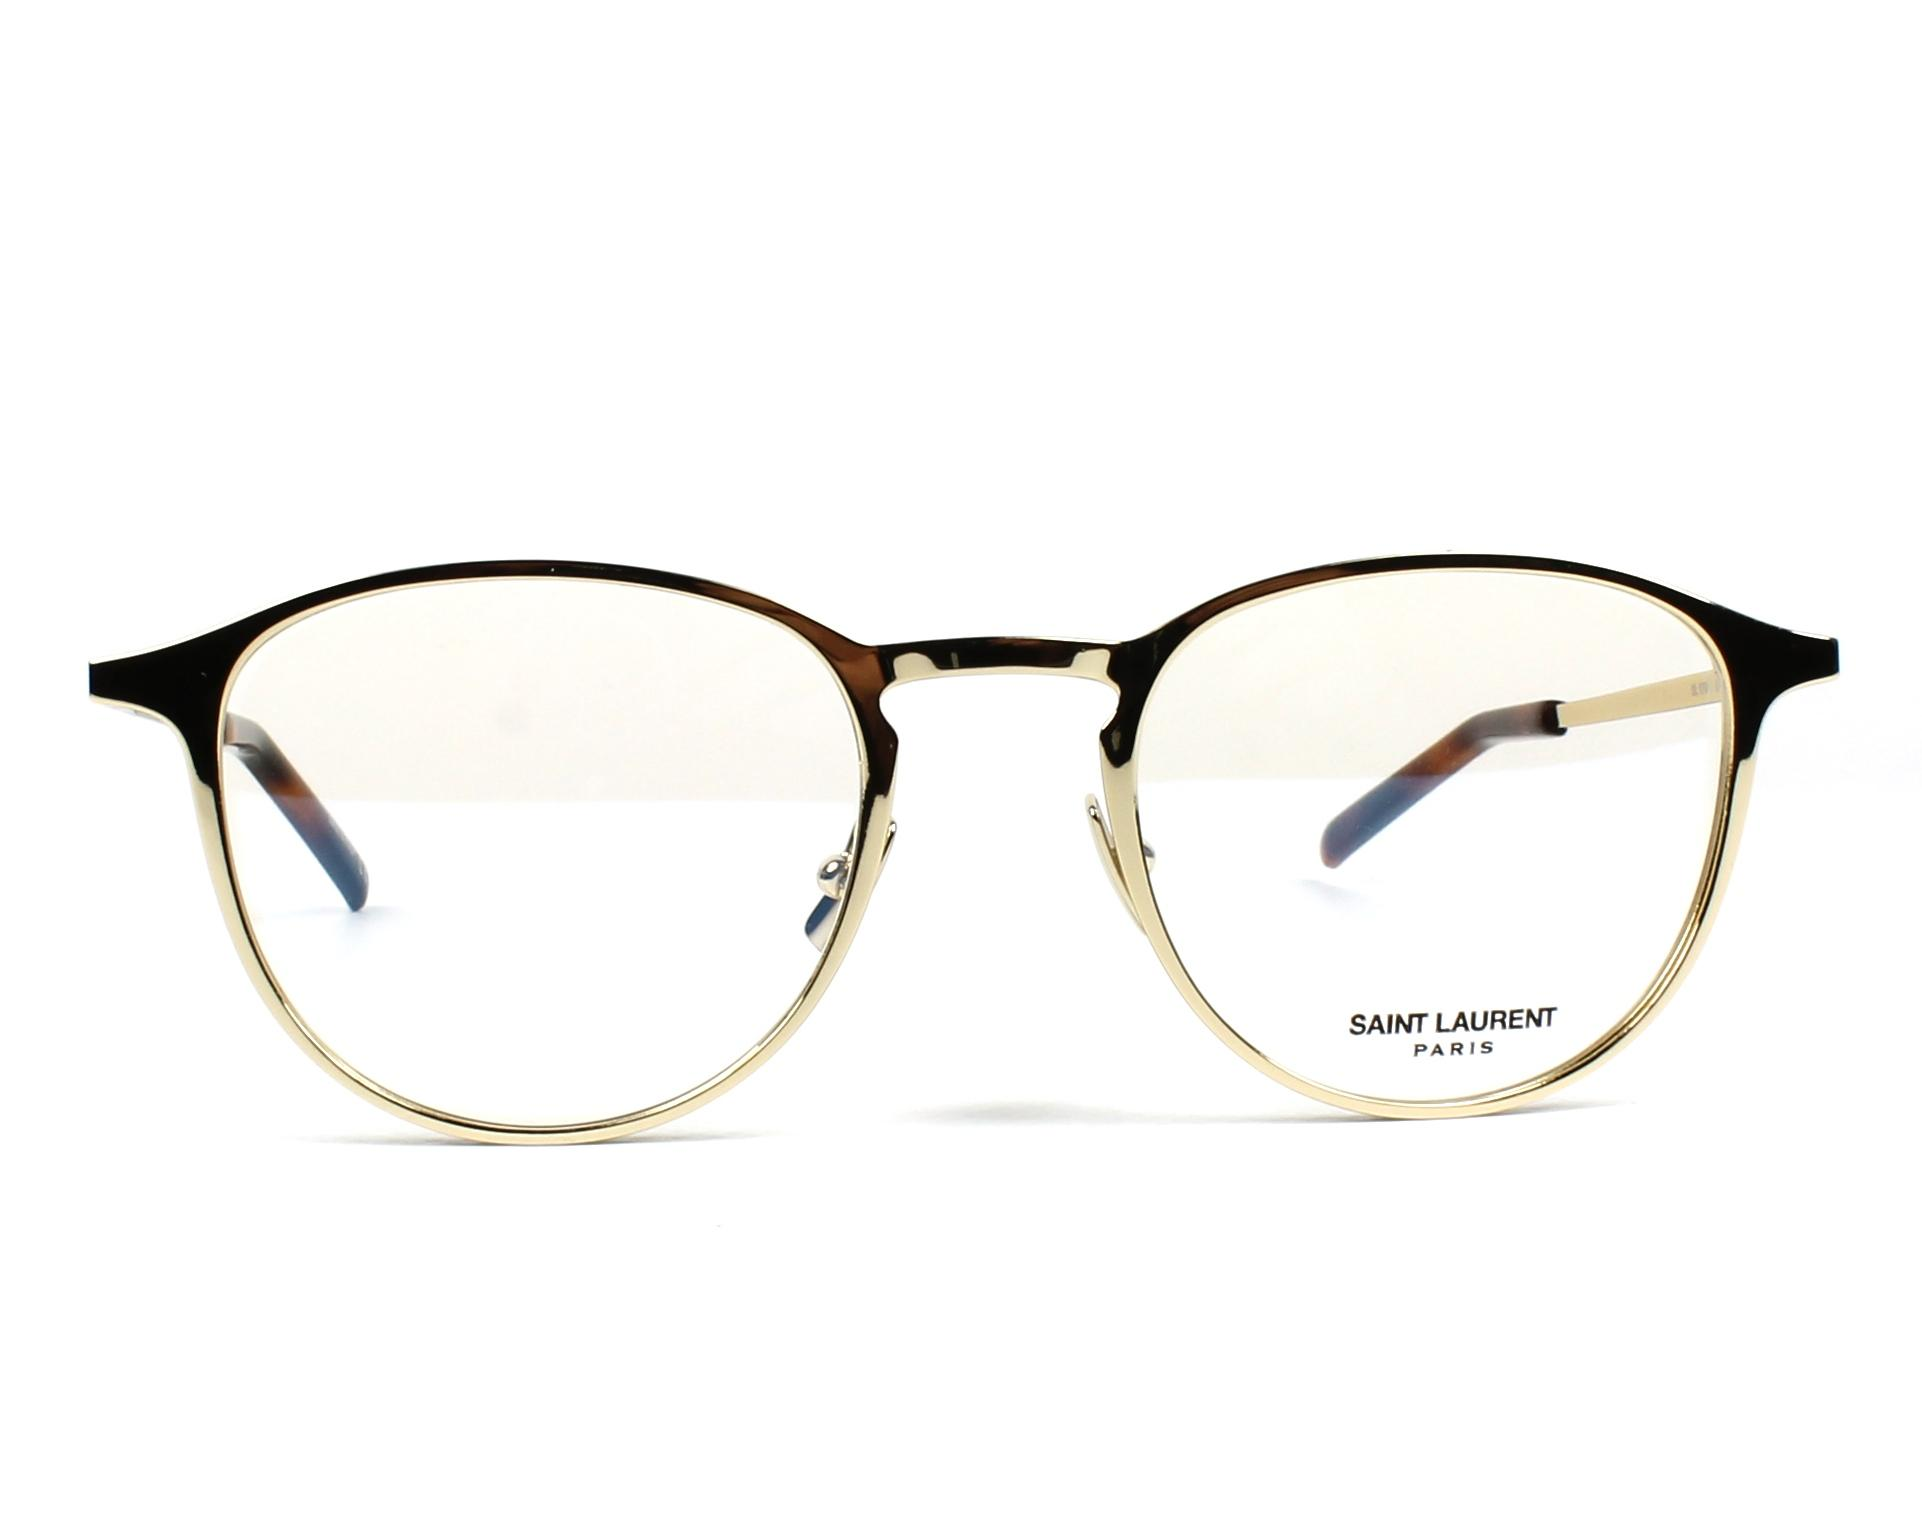 308b6a7da21 eyeglasses Yves Saint Laurent SL-179 002 49-20 Gold front view